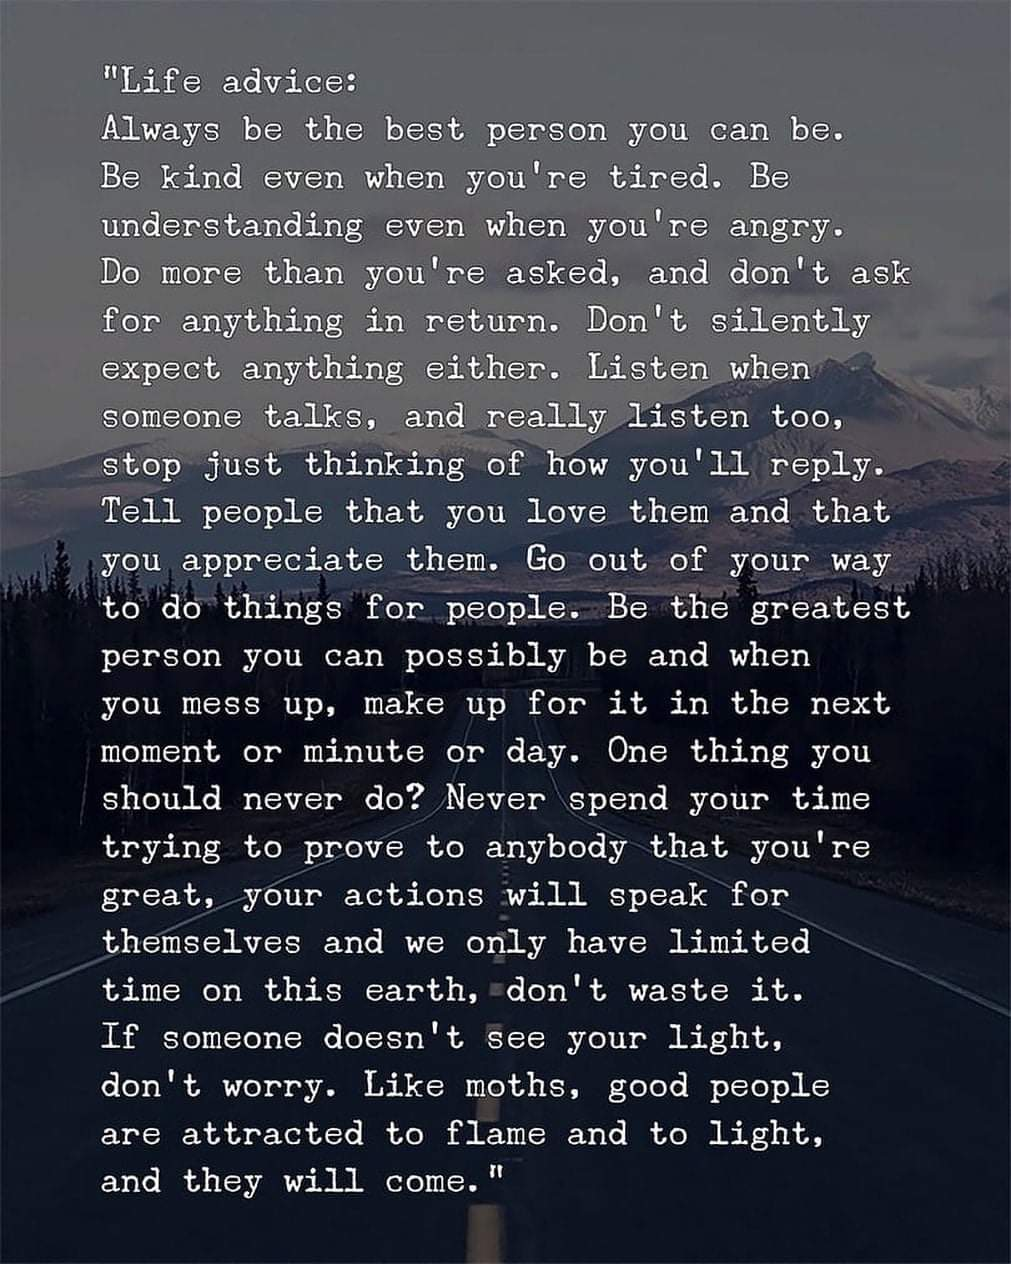 [Image] Always be the best person you can be!